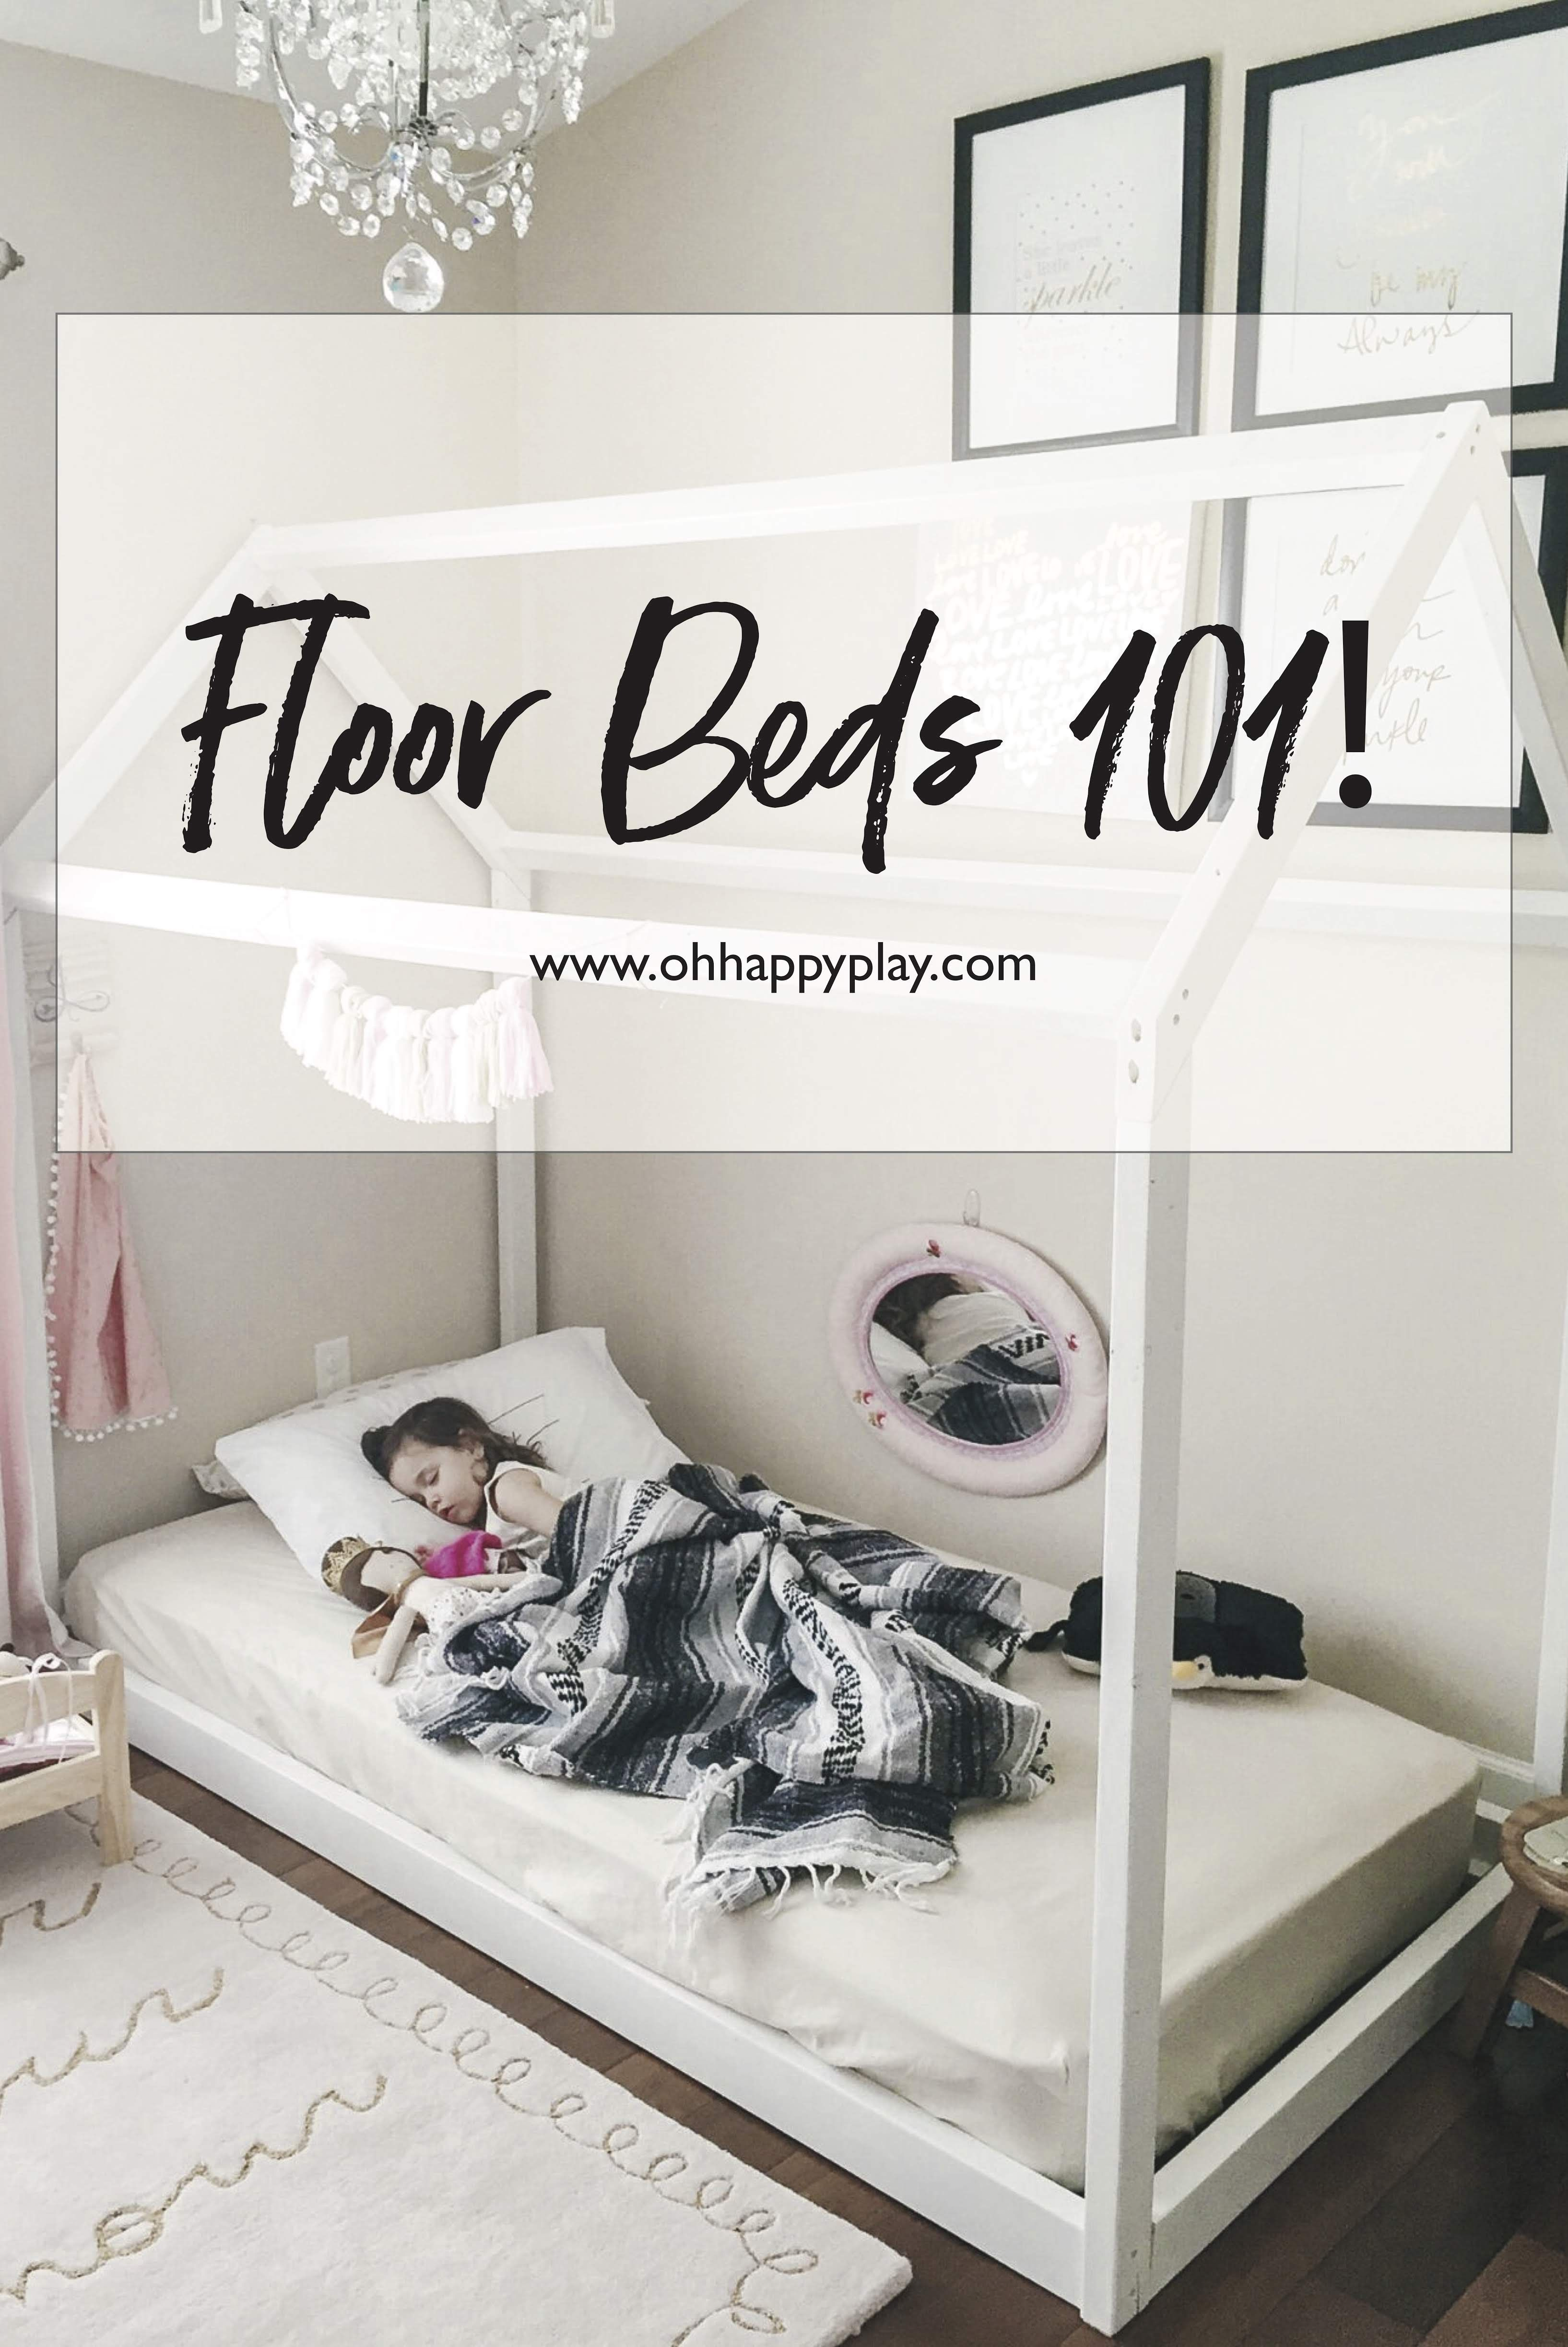 Pin It Floor Beds 101 Are You Looking For The Perfect Bed Solution For Your Child Floor Beds Have So M Toddler